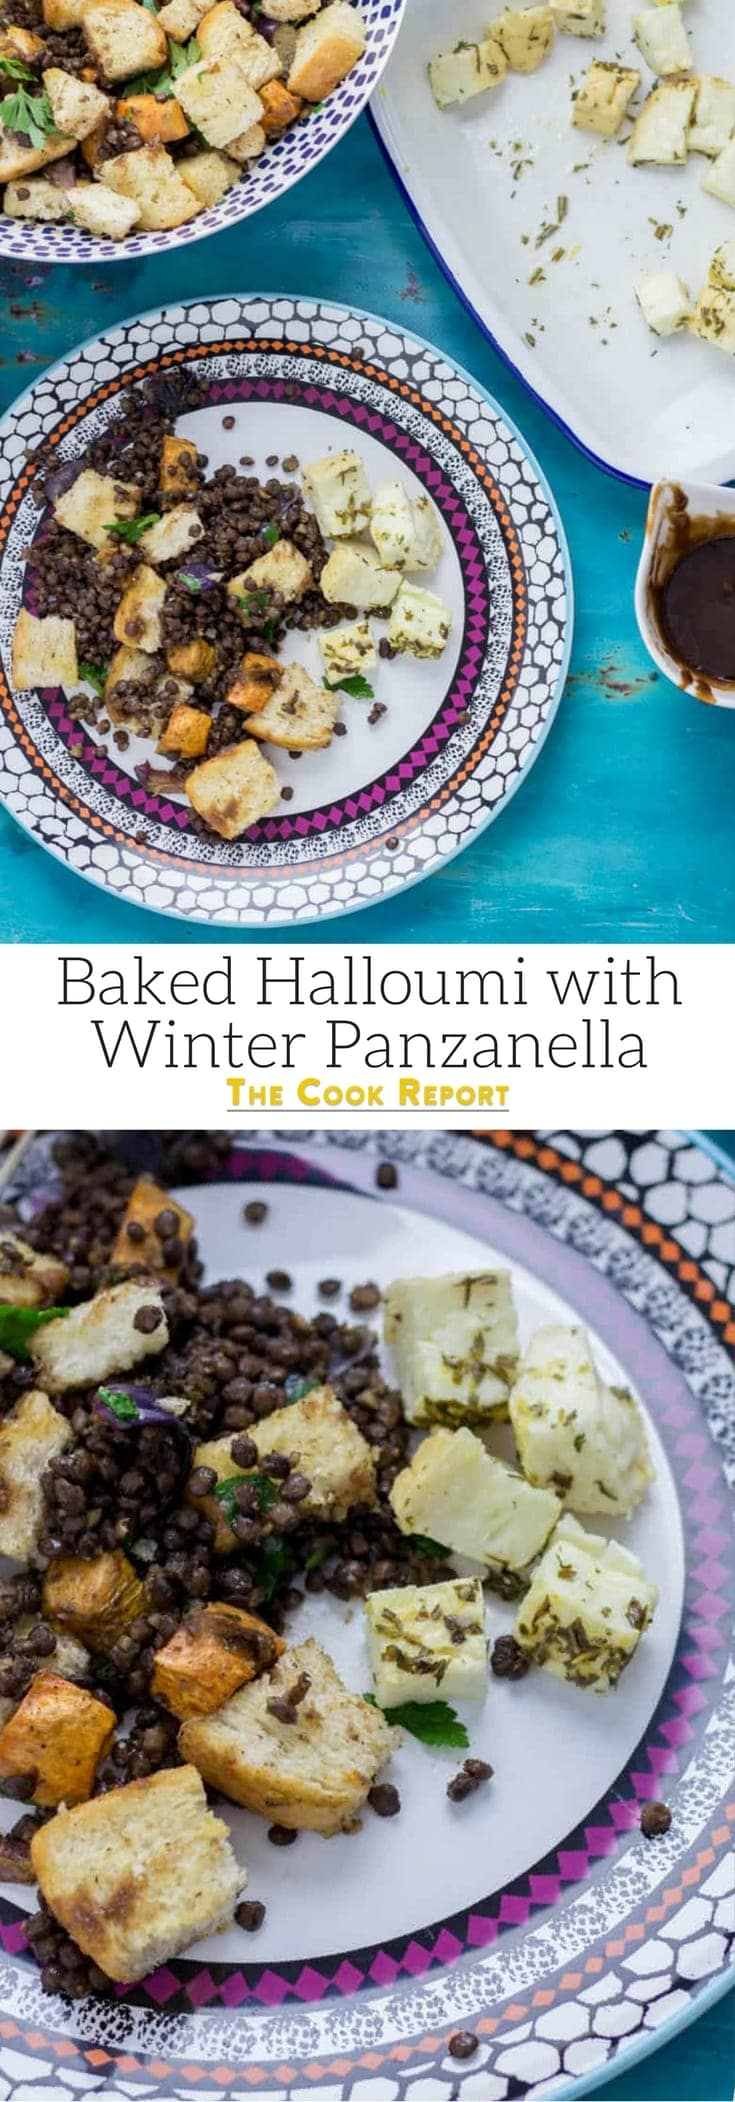 Baked Halloumi with Winter Panzanella. Halloumi is the perfect addition to a meat free meal! Bake it in the oven with loads of herbs and serve along side this filling winter panzanella style salad for your next vegetarian dinner.  #panzanella #salad #halloumi #recipe